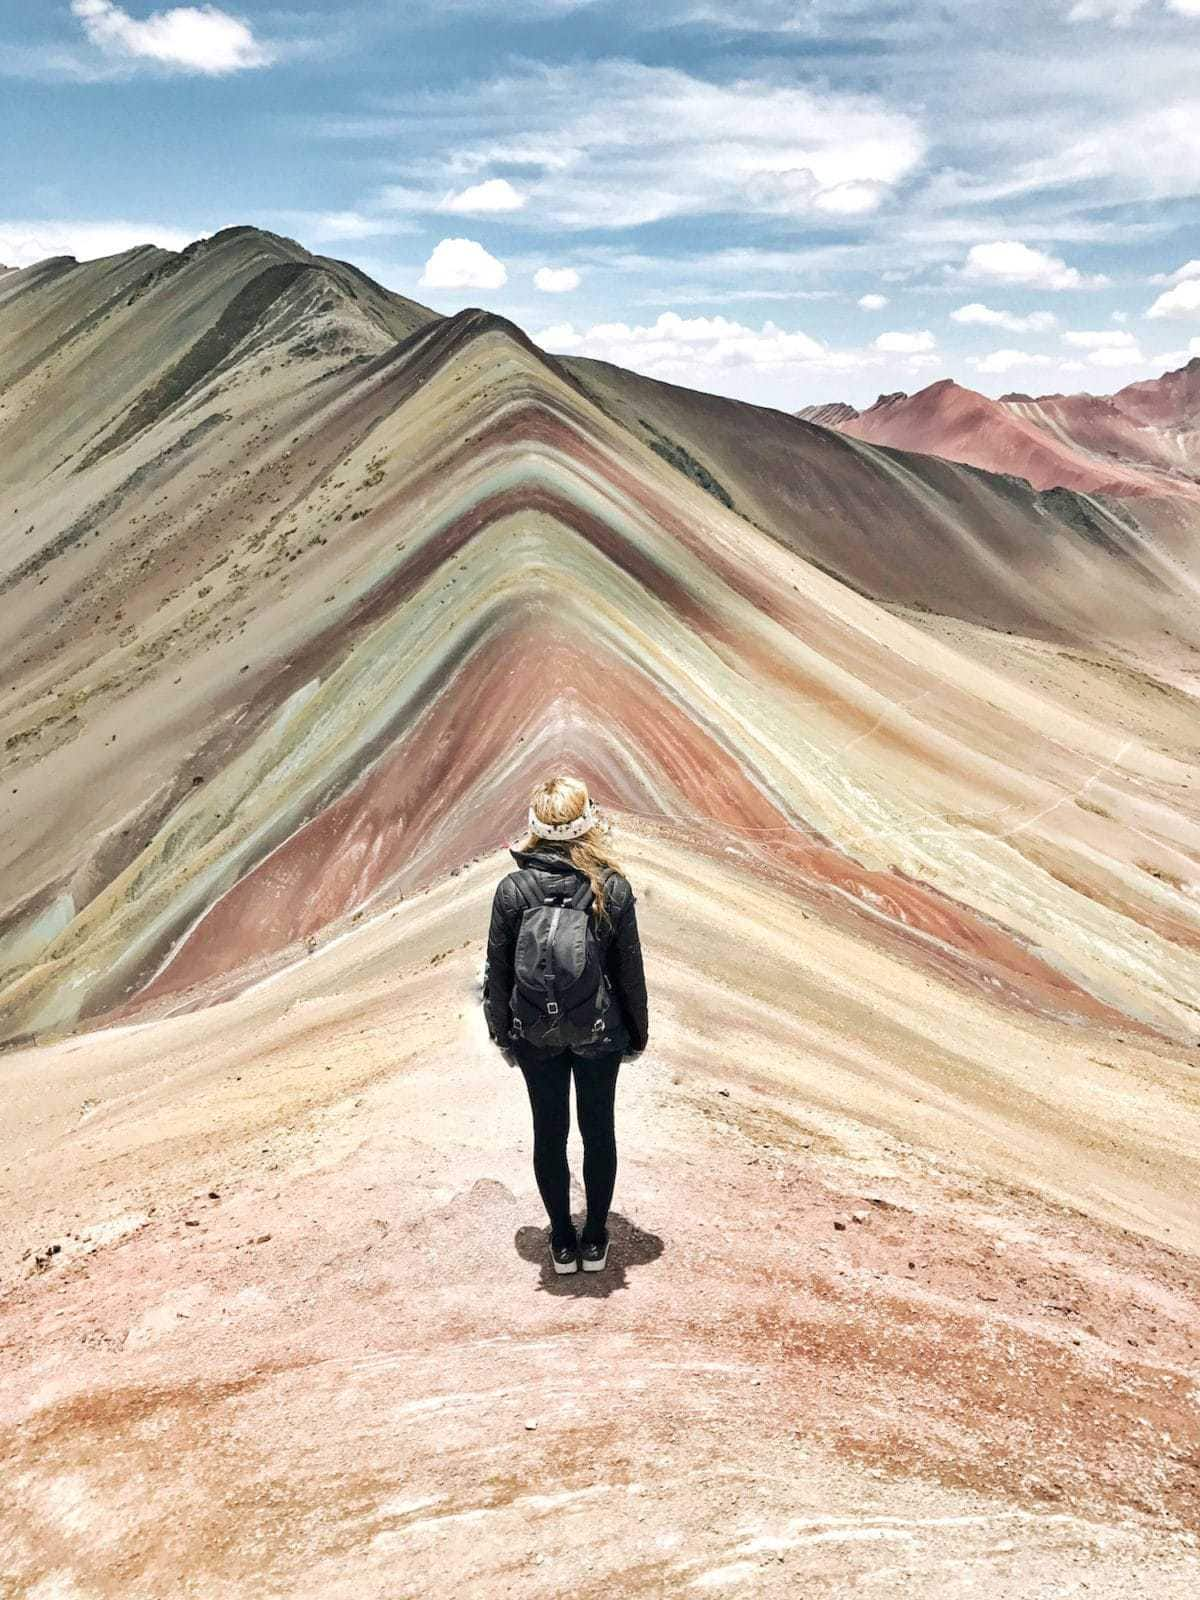 Michelle Halpern @livelikeitsthewknd at Rainbow Mountain, Peru